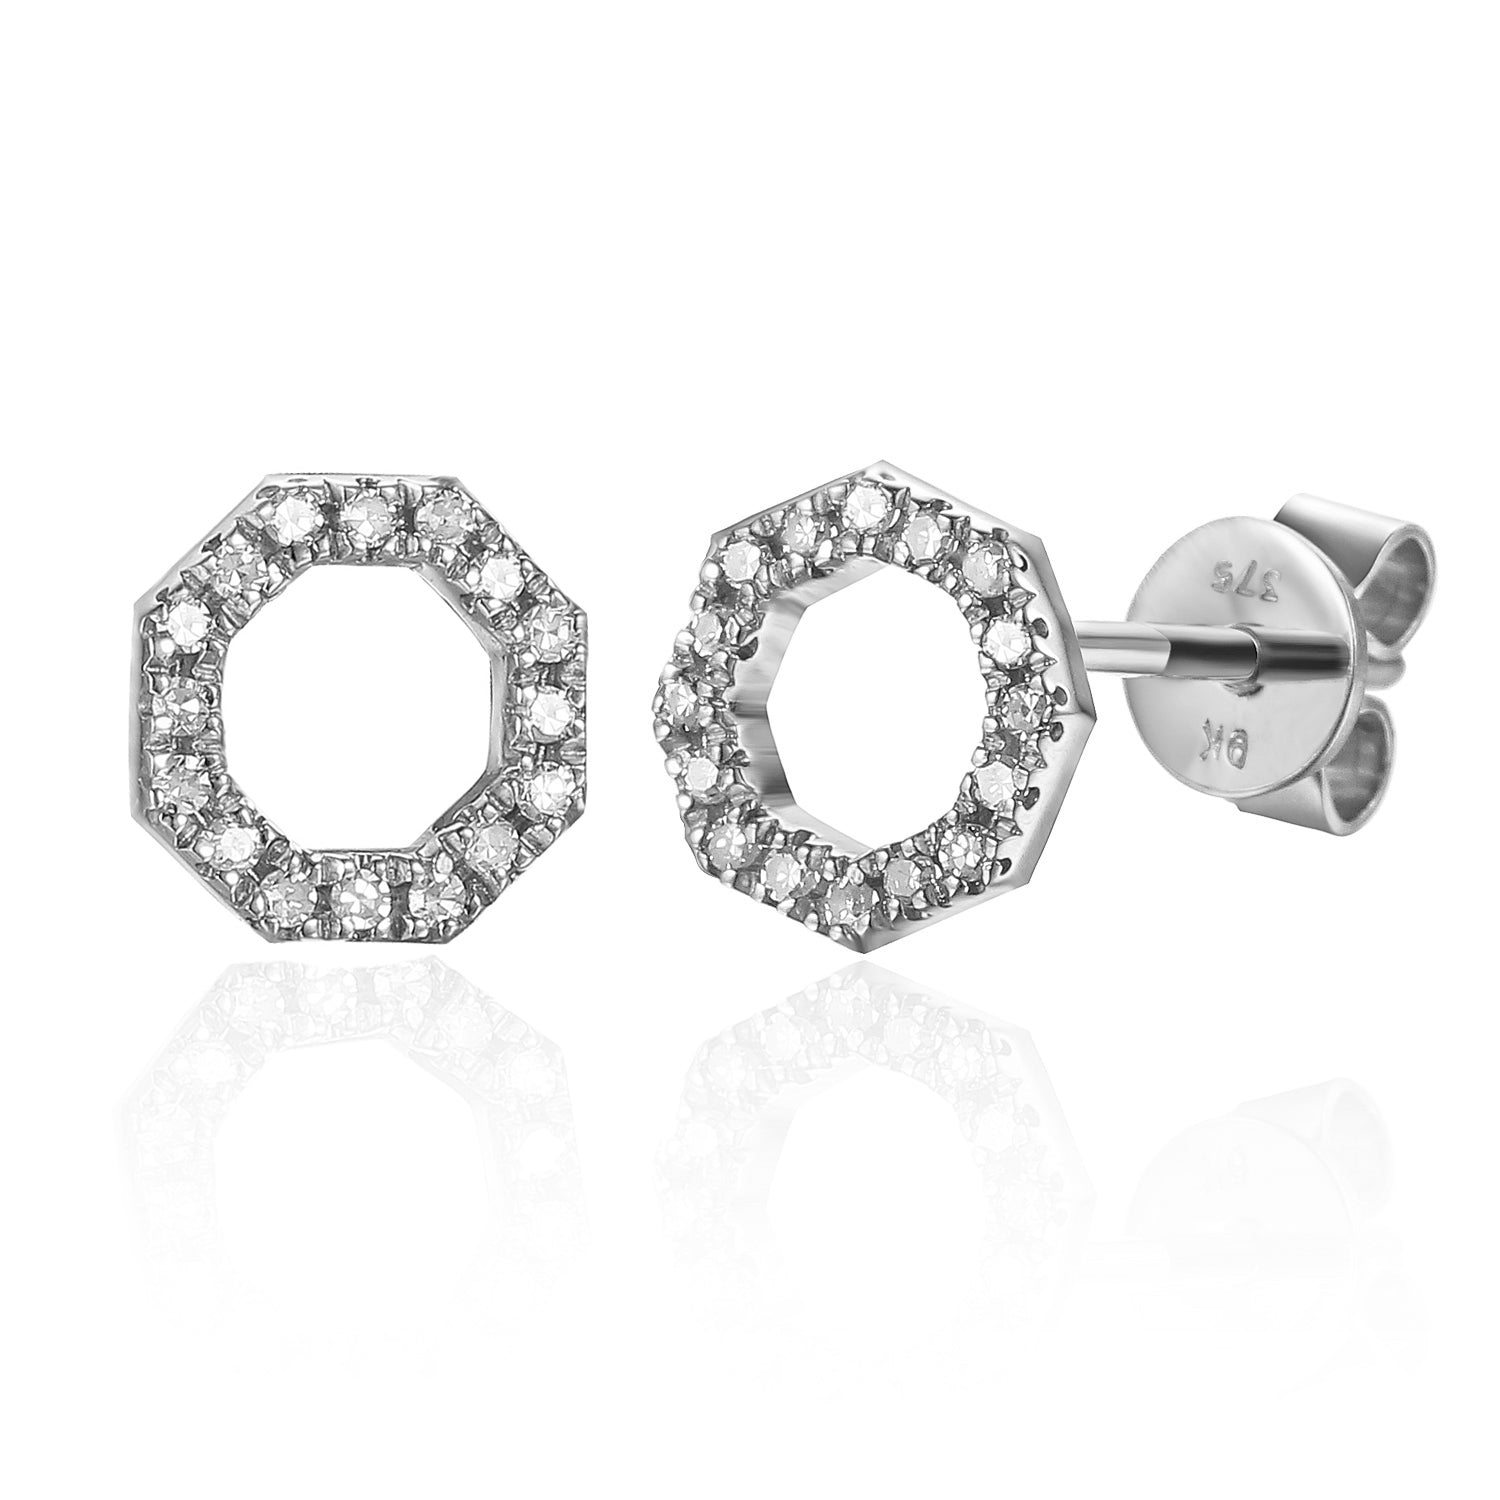 White Gold Open Octagon Pave Diamond Geometric Stud Earrings